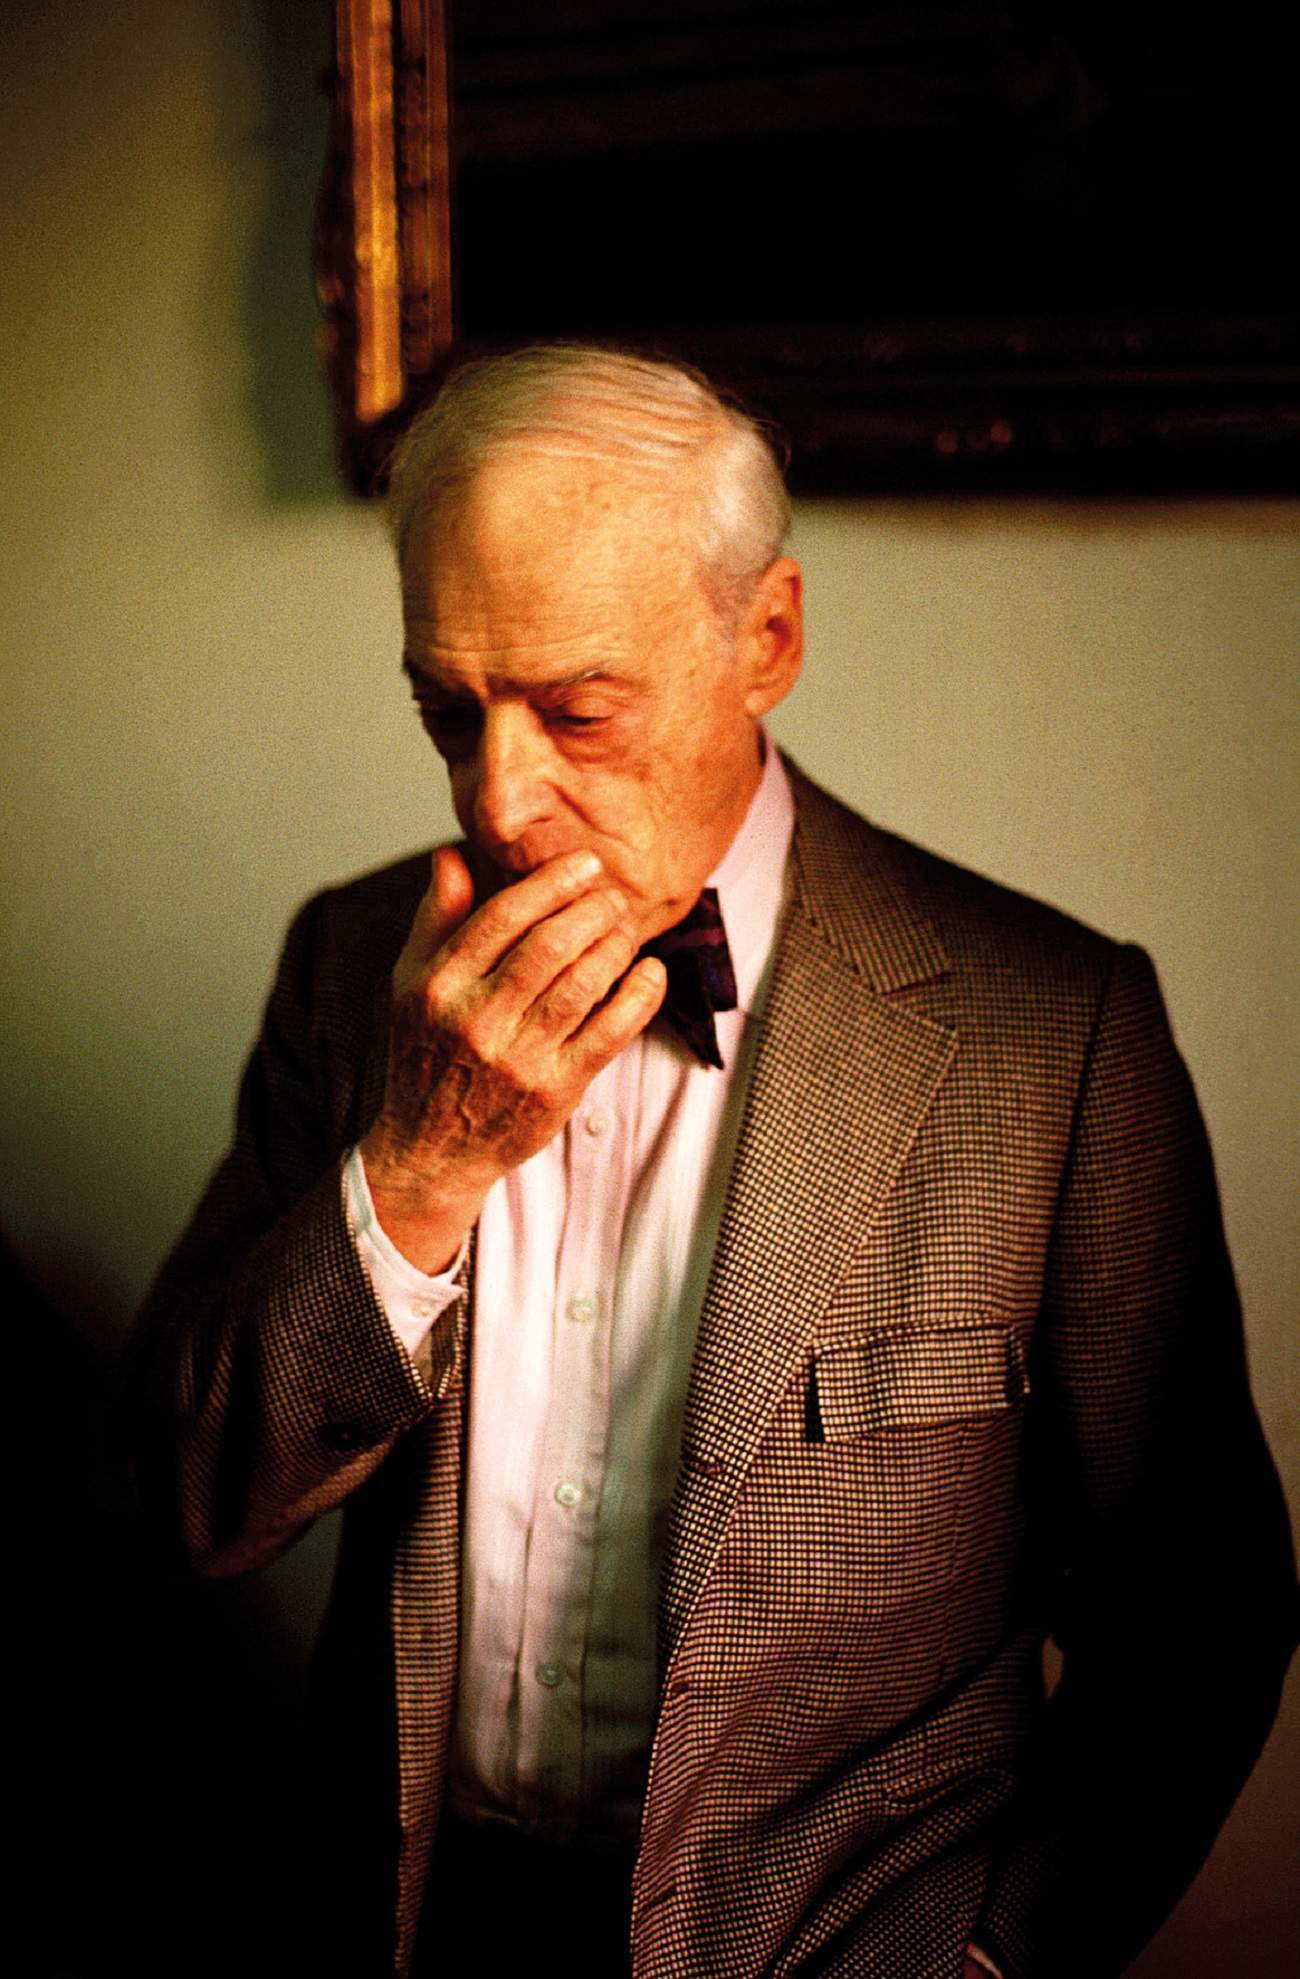 The frailty, vanity and duality of Saul Bellow